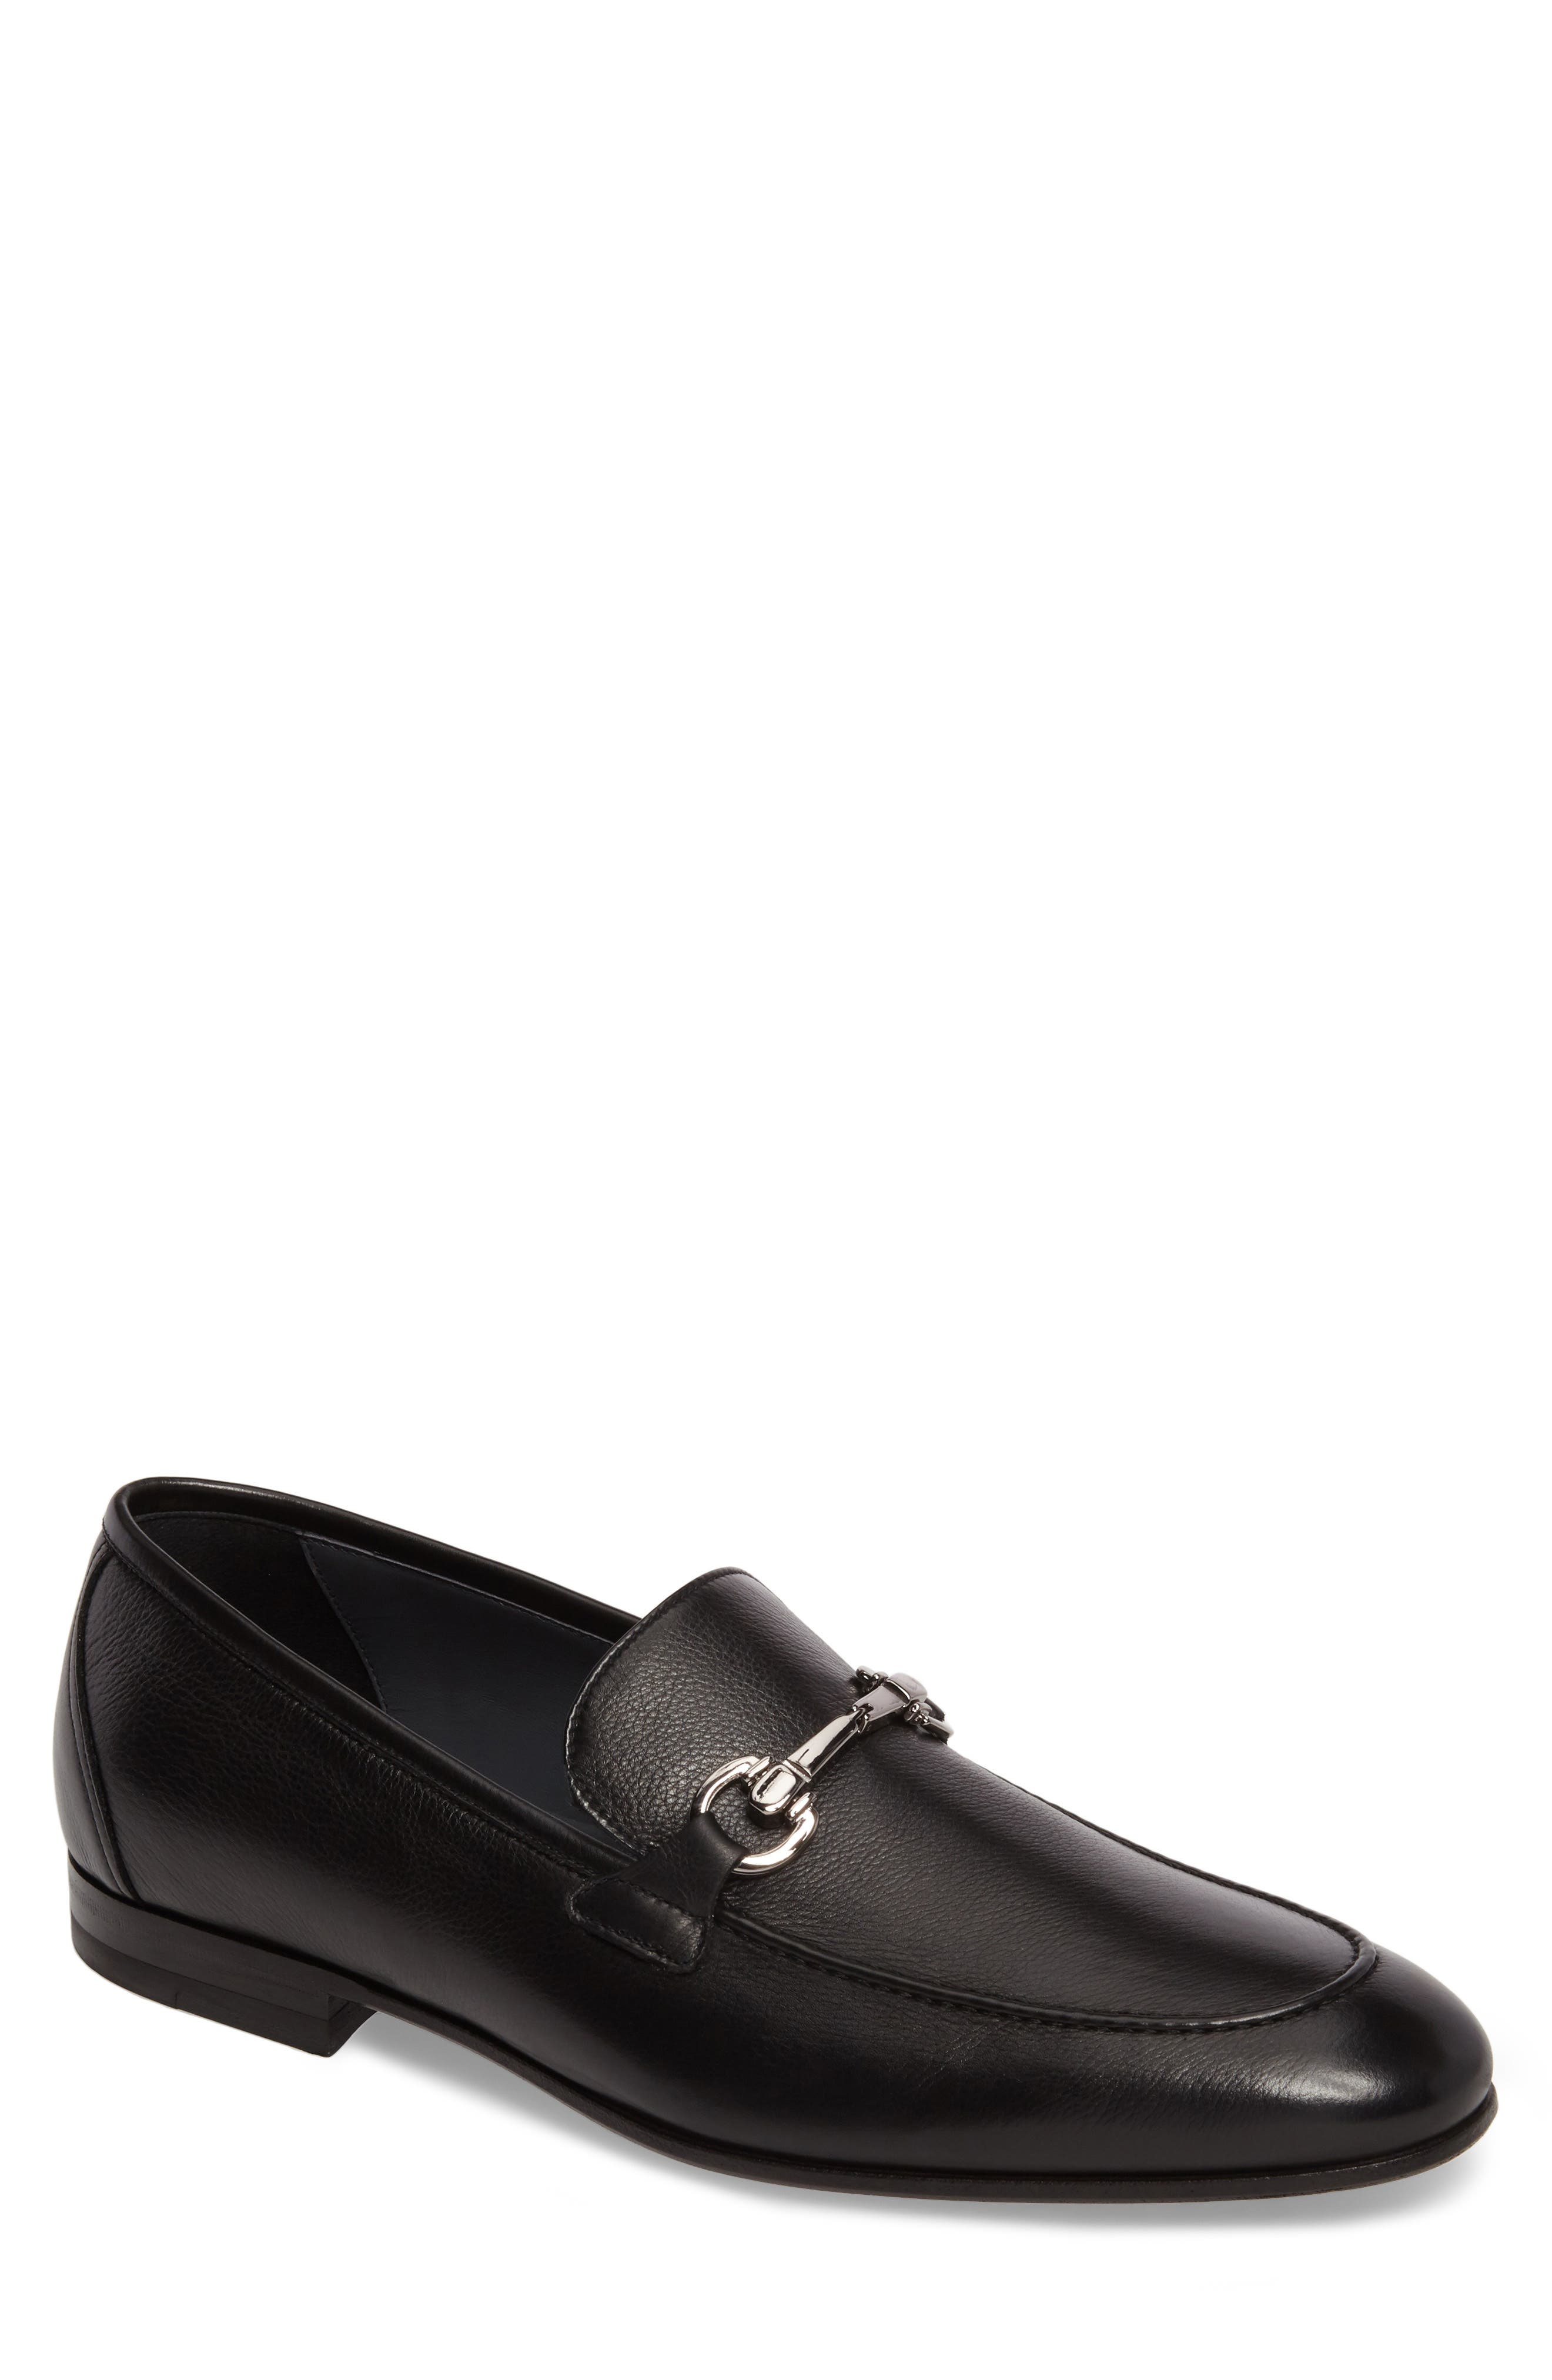 Brianza Bit Loafer,                             Main thumbnail 1, color,                             001